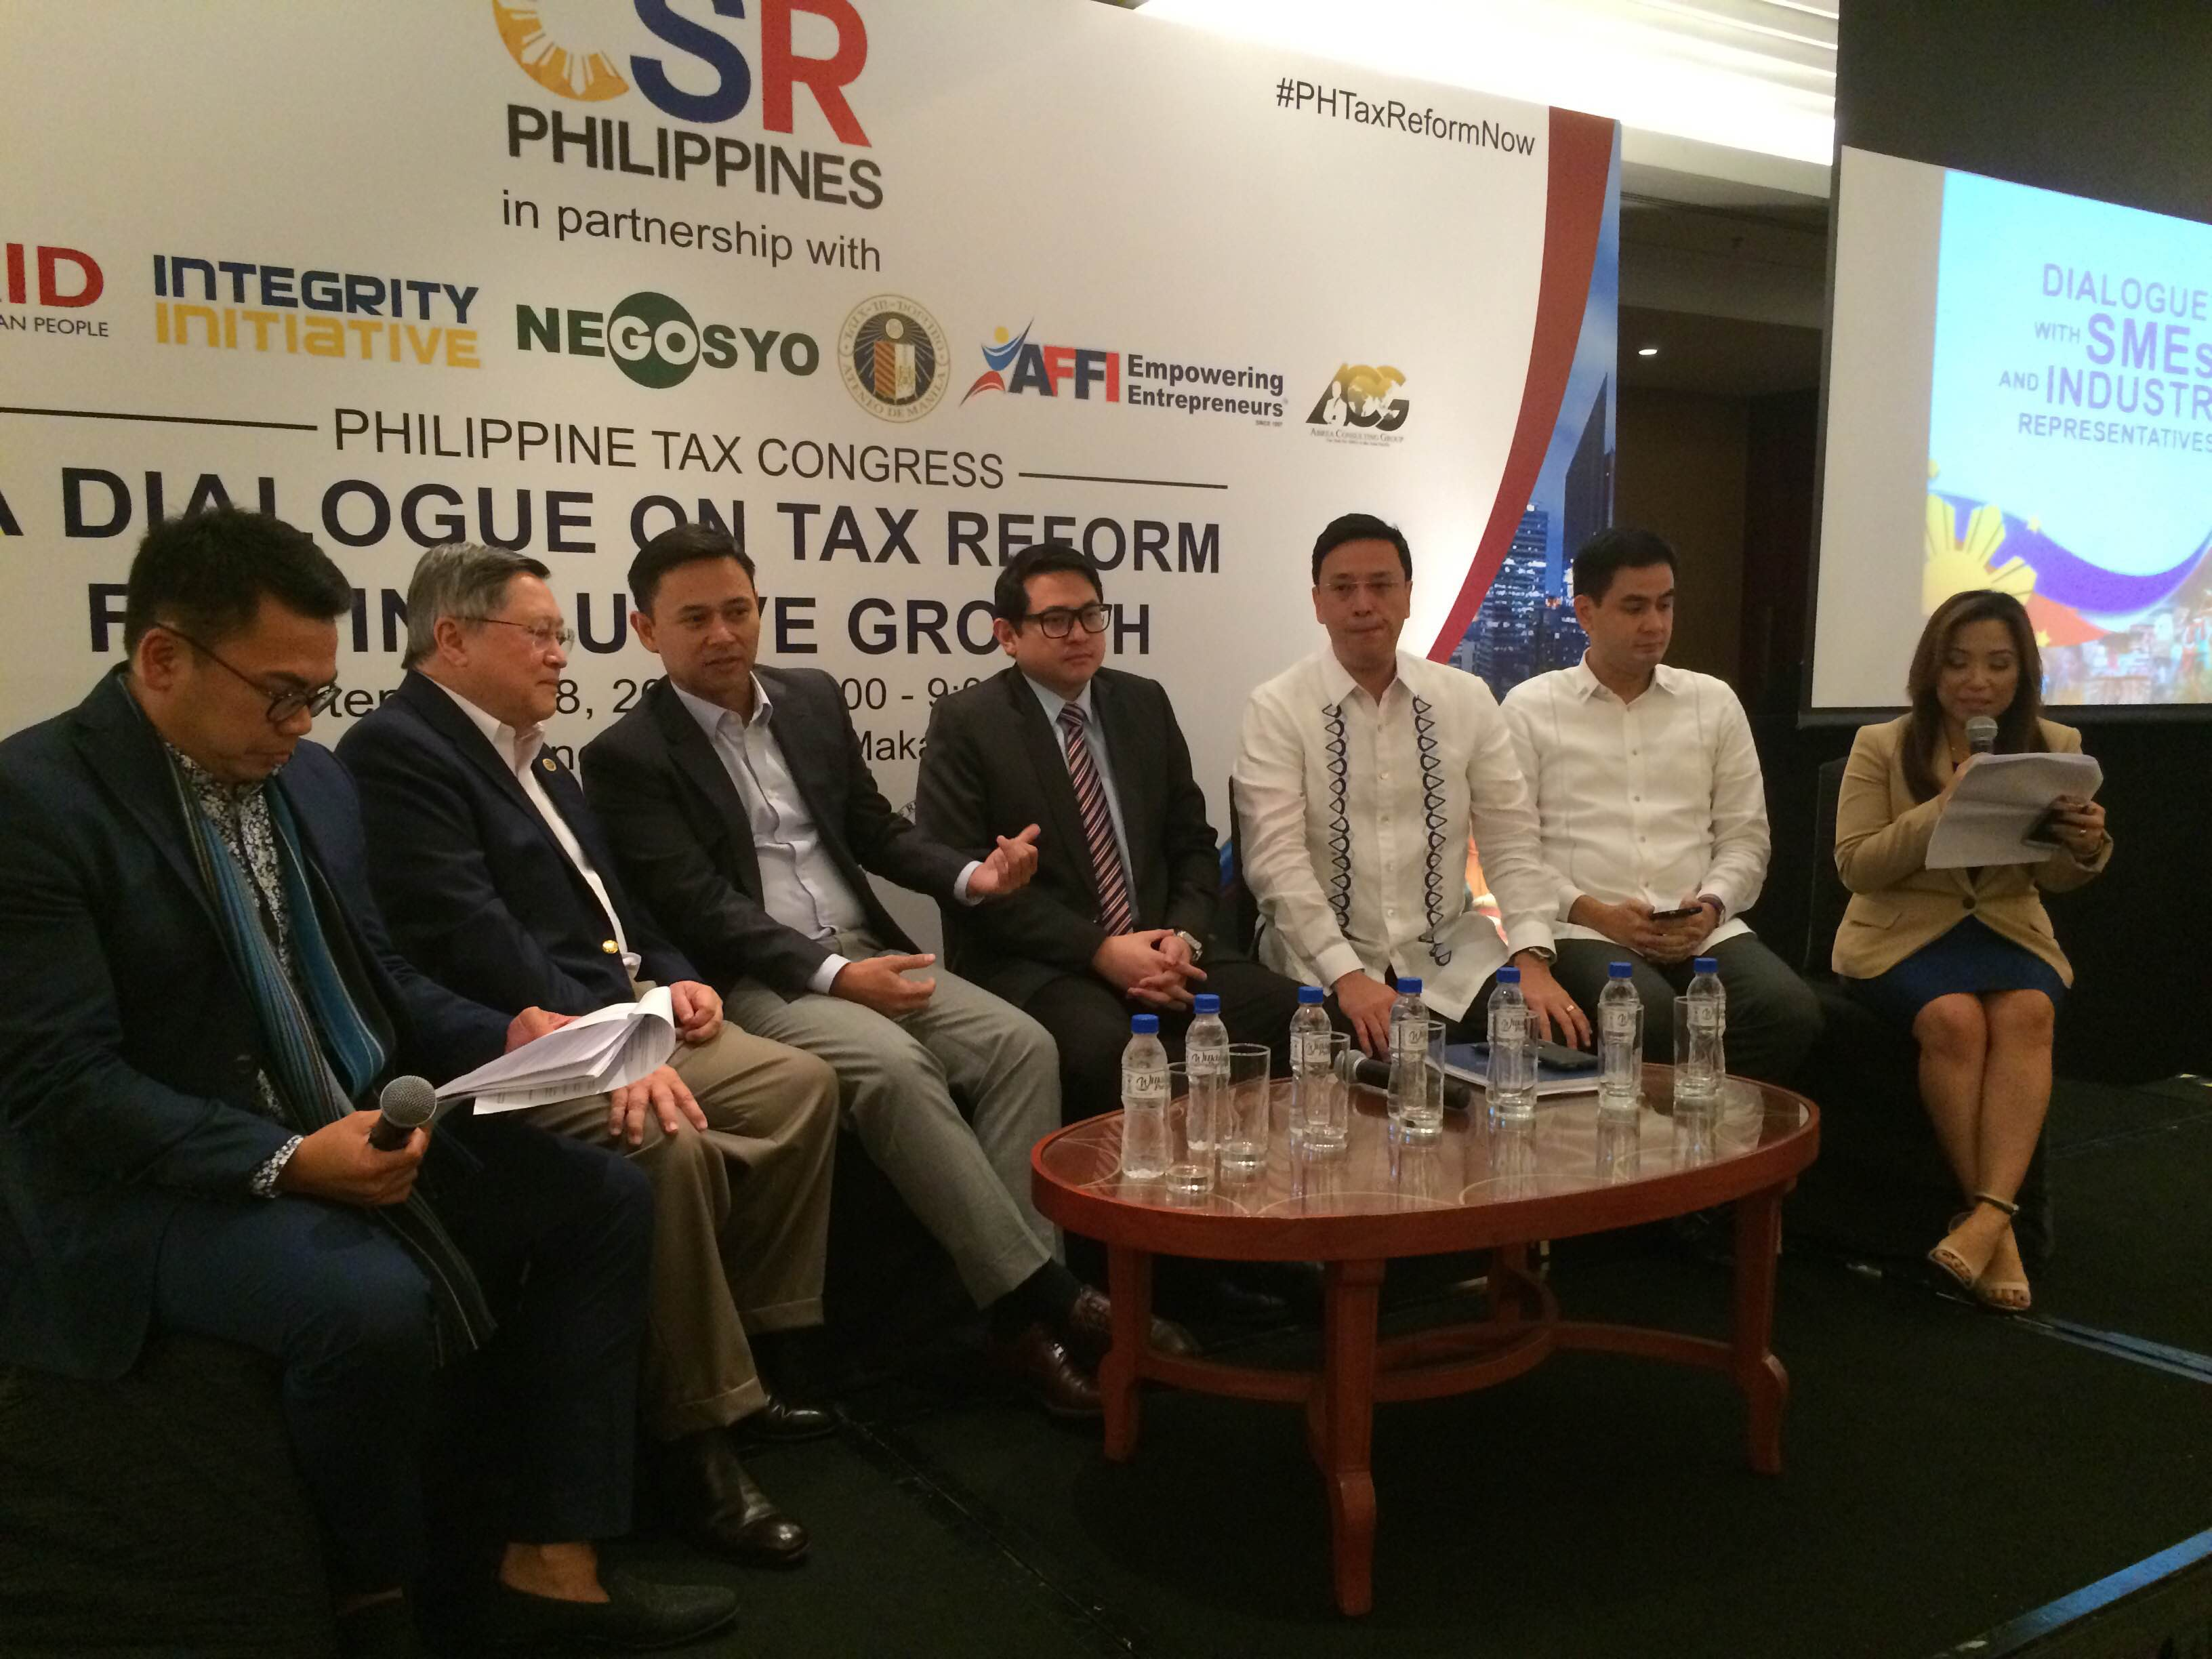 sin tax in the philippines Aquino signs historic sin tax bill into law the law imposes higher taxes on tobacco and alcohol products, overcoming a strong industry lobby that kept prices in the philippines among the cheapest in the world.